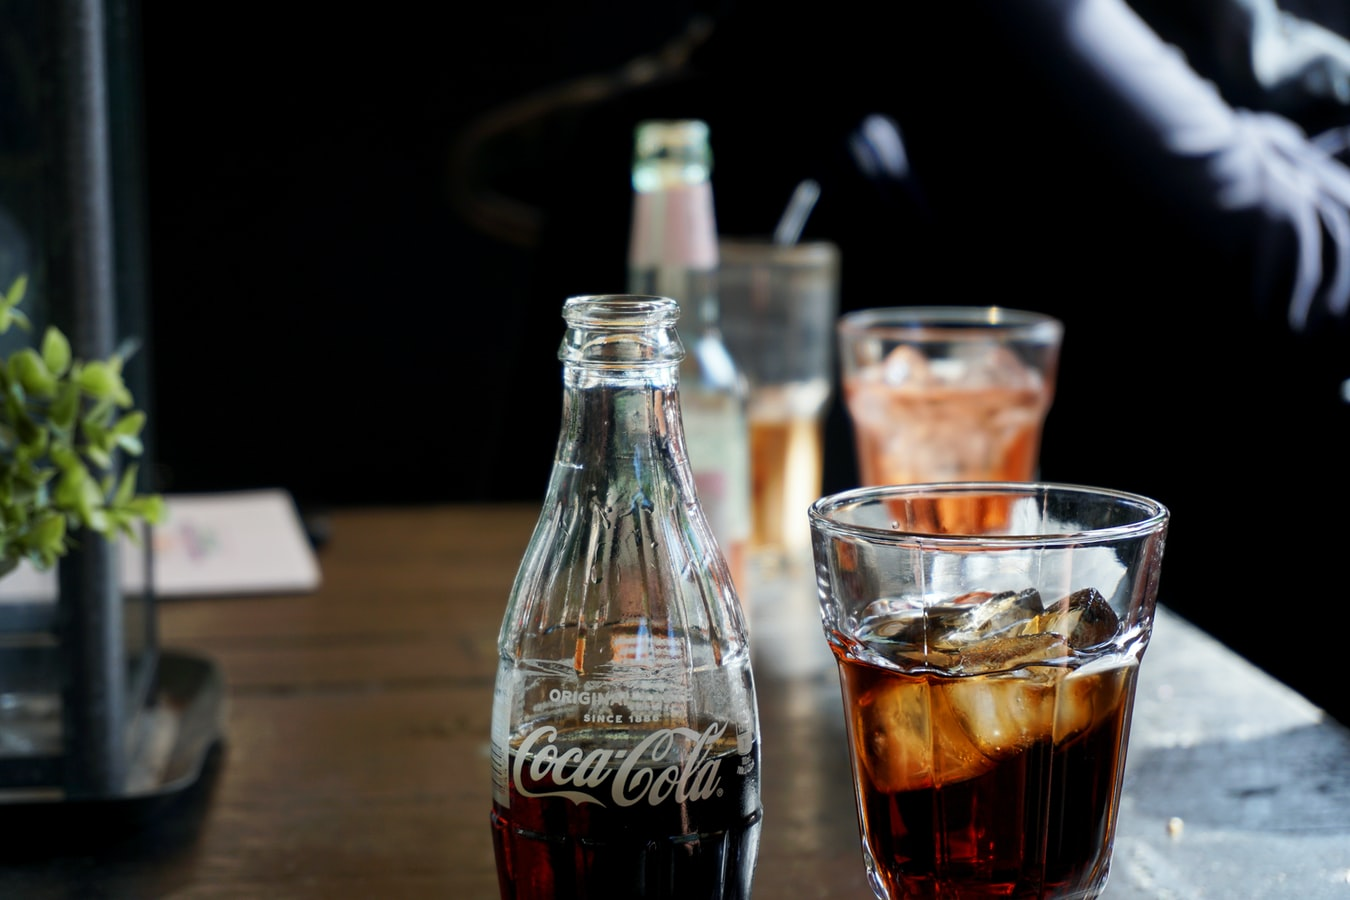 A glass bottle of Coca-Cola and a Calimocho Drink